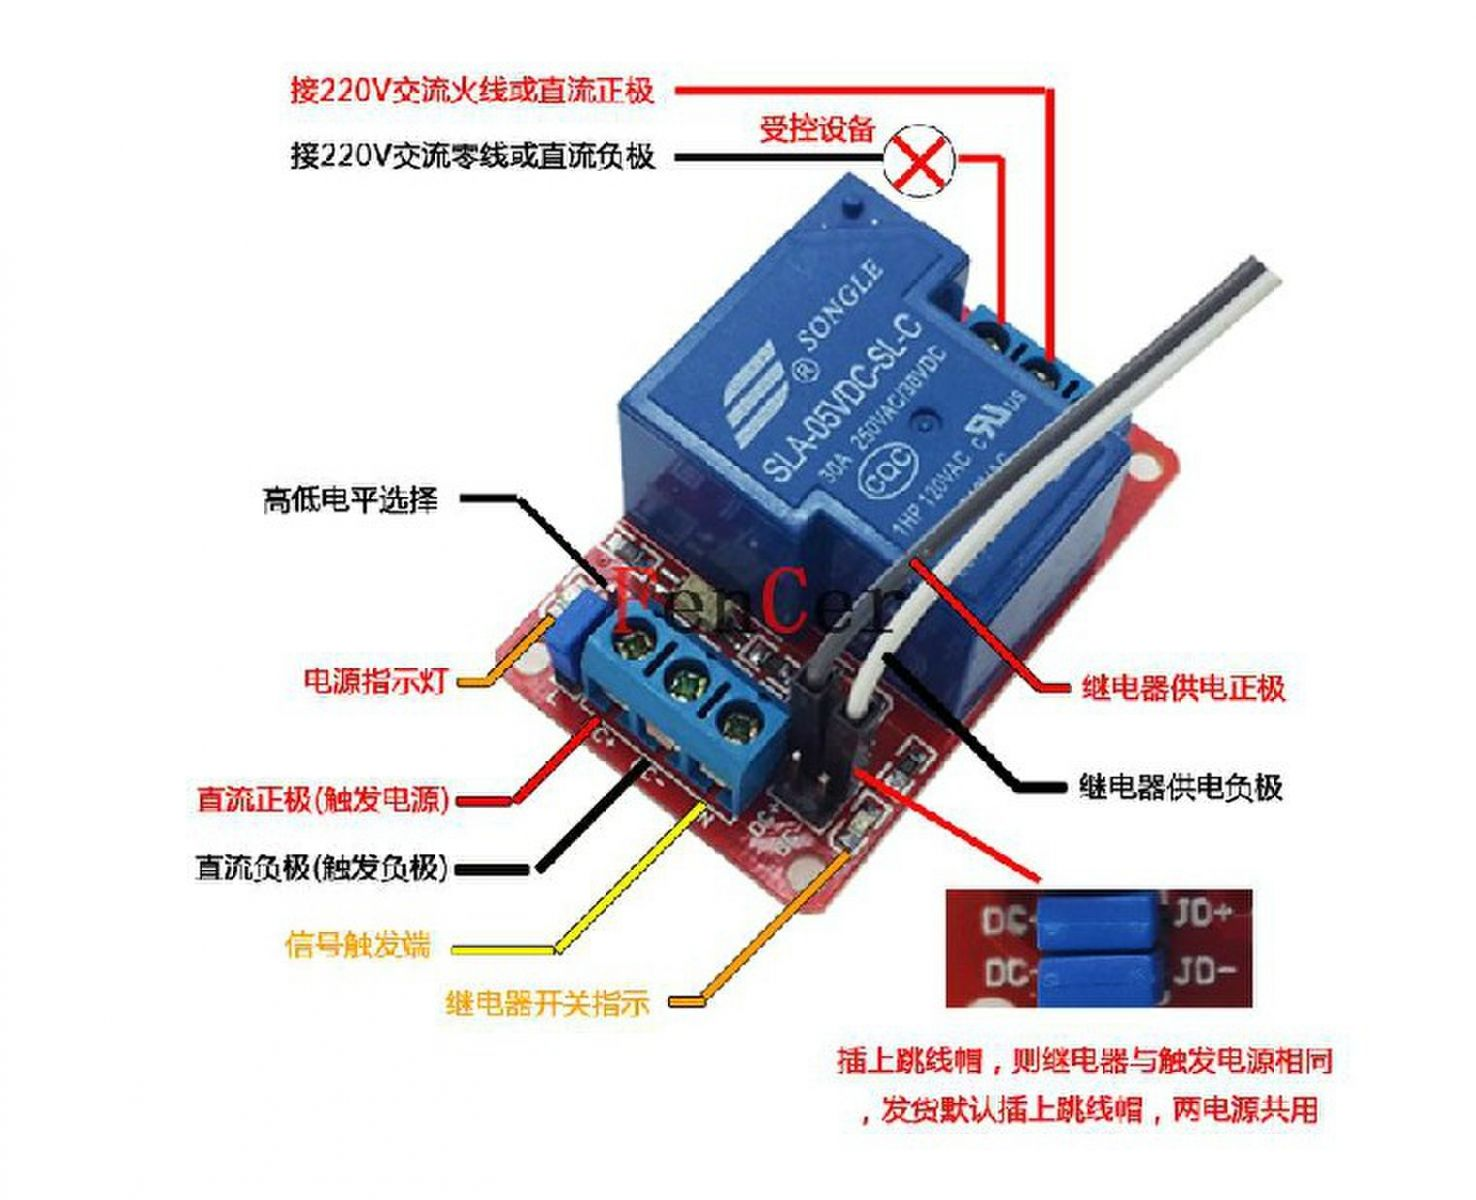 24v relay wiring diagram 5 pin directv whole home dvr 30a circuit maker